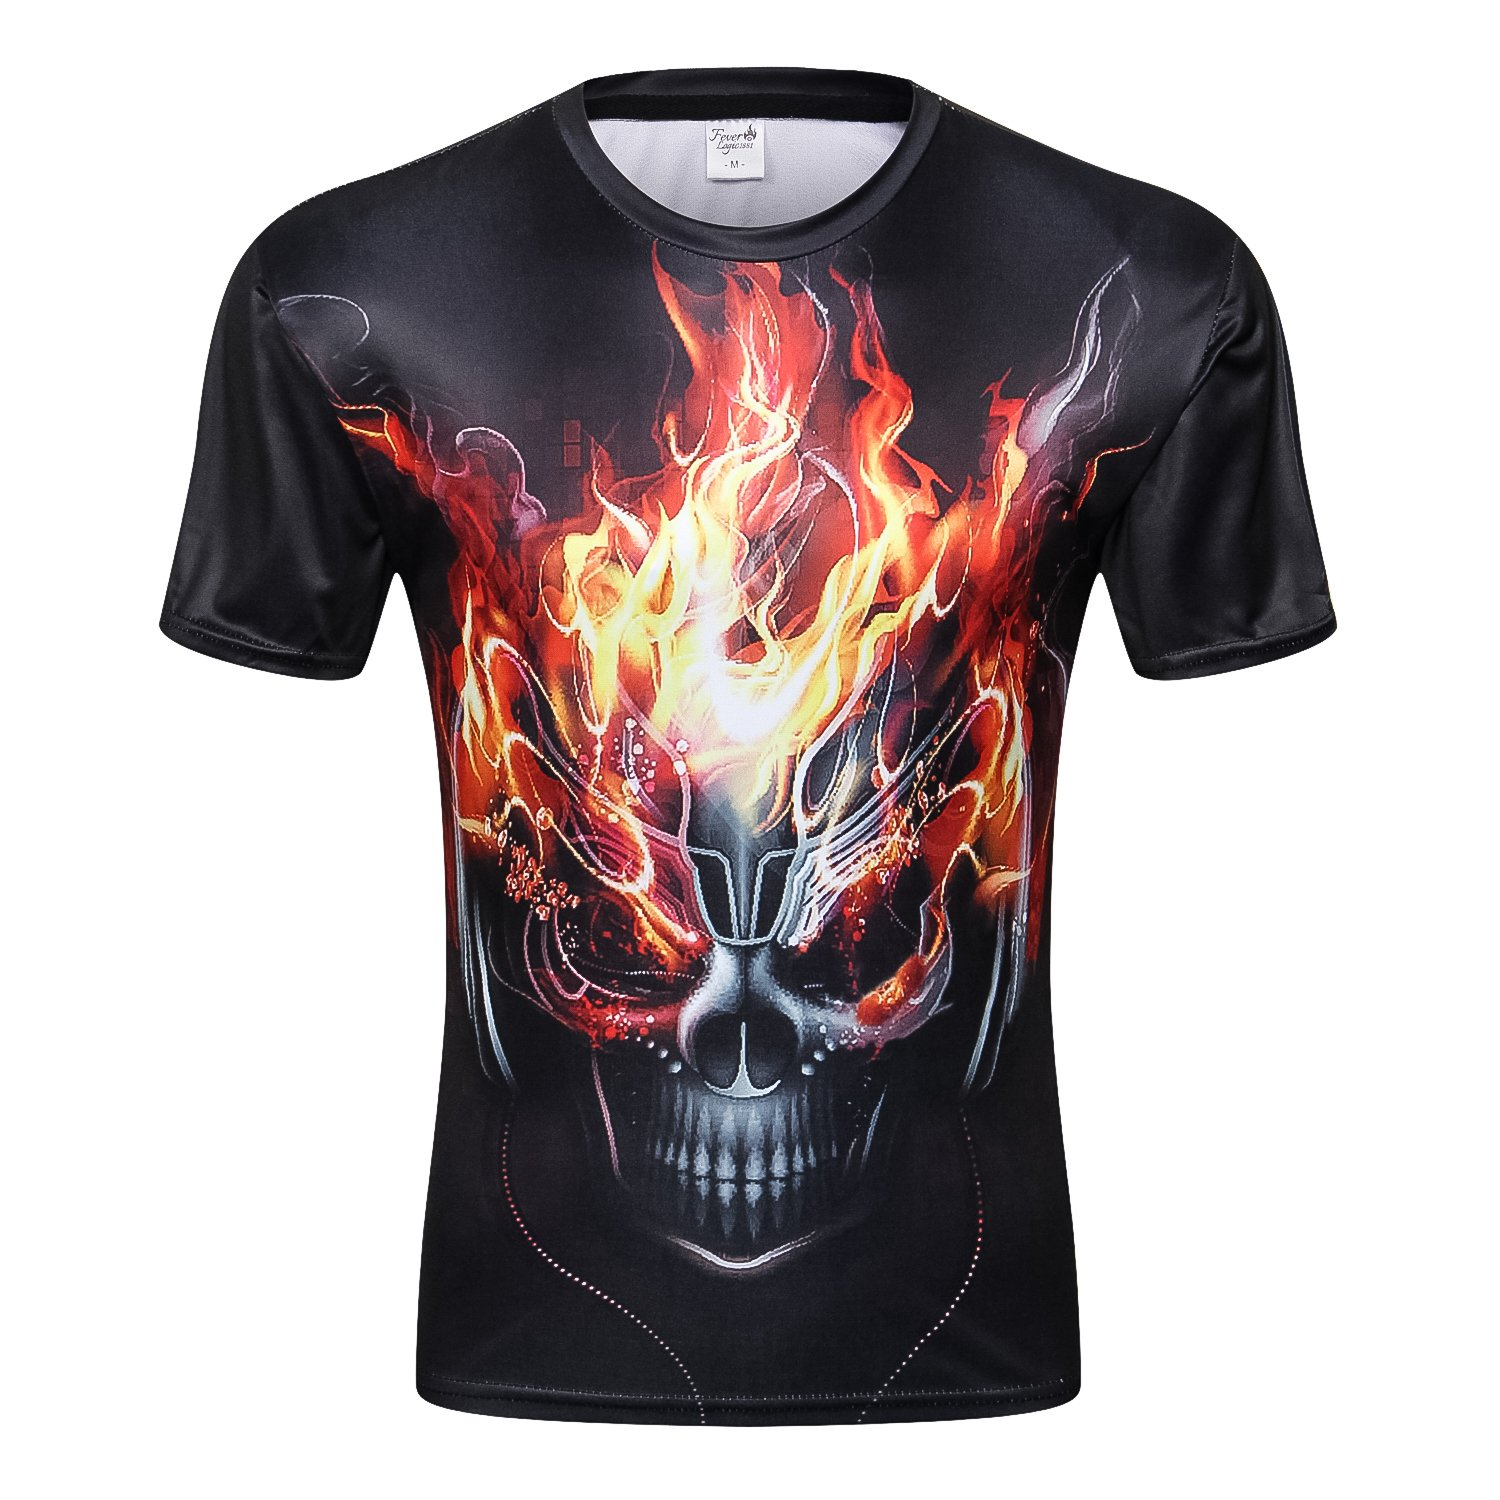 Skull 3D Print T Shirt Multiple Designs Short Sleeve Creative Fashion (CC0019, M)